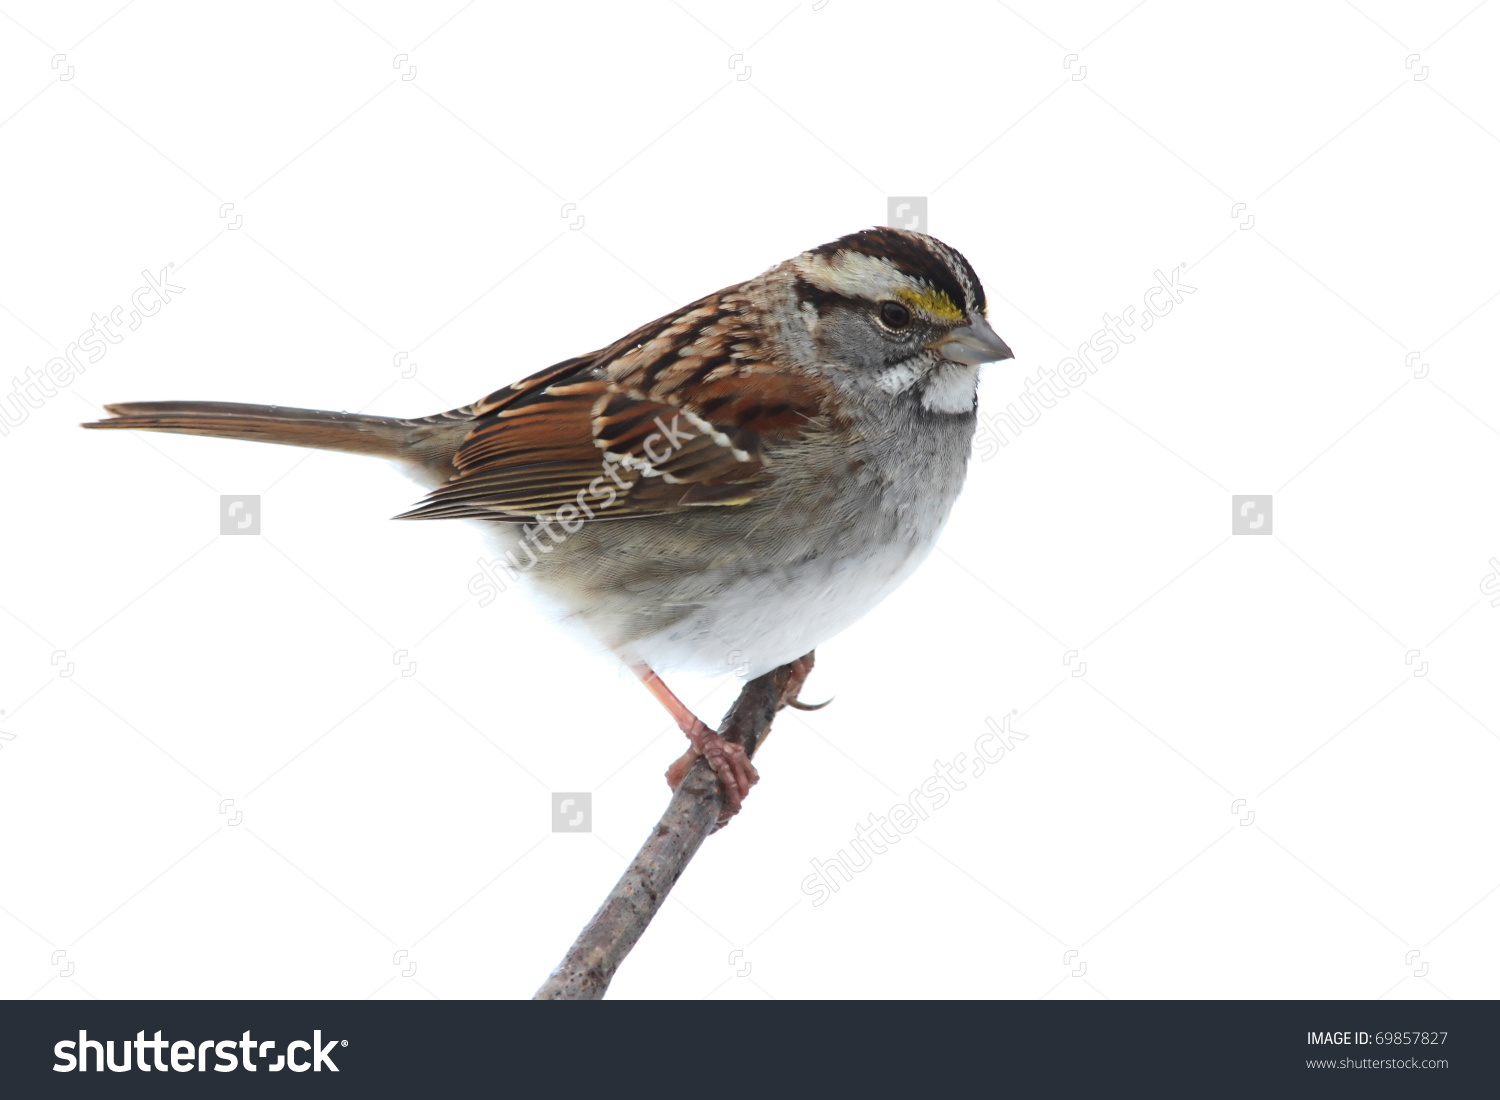 White-crowned Sparrow clipart #9, Download drawings